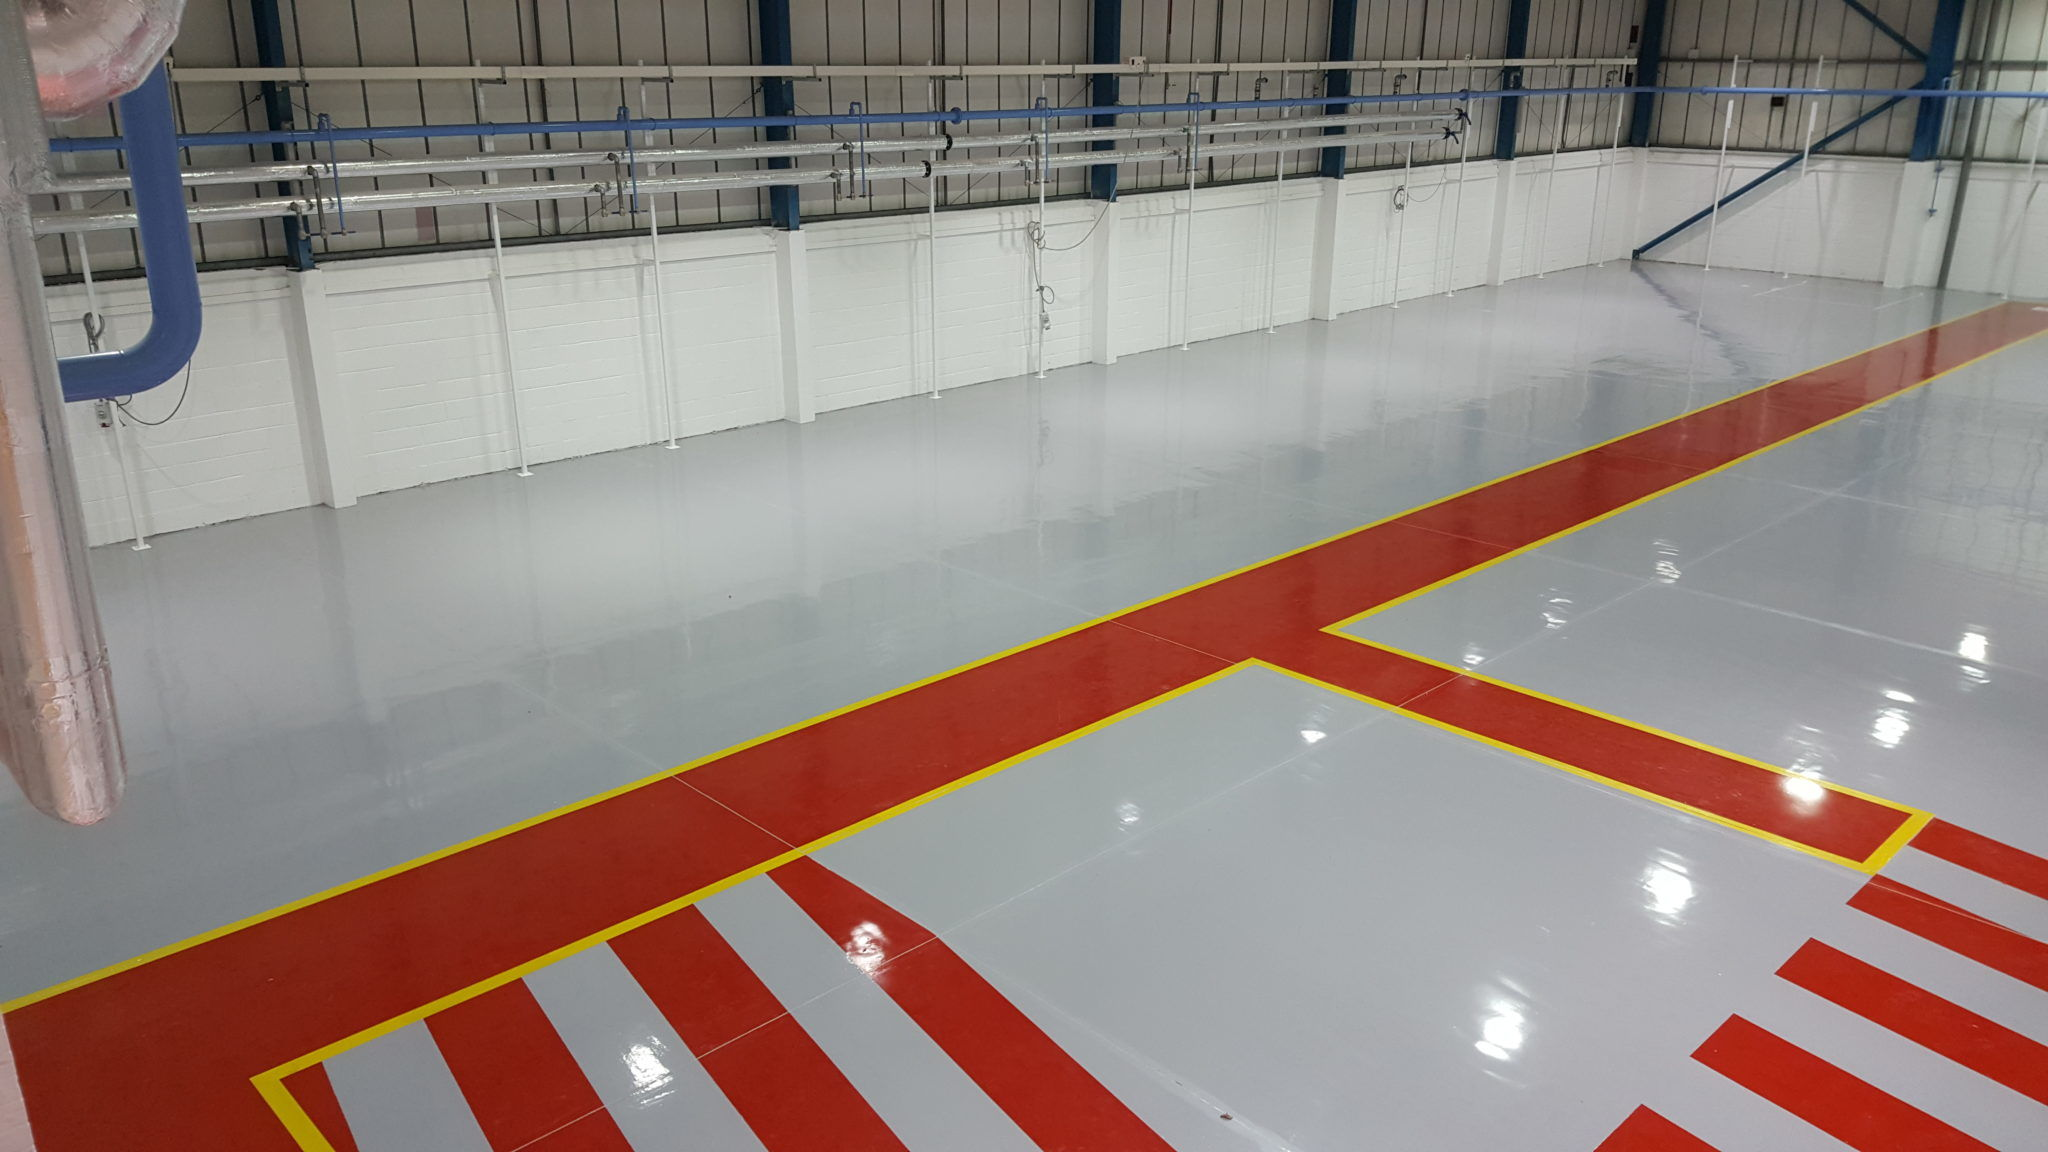 Industrial Flooring in Hangar